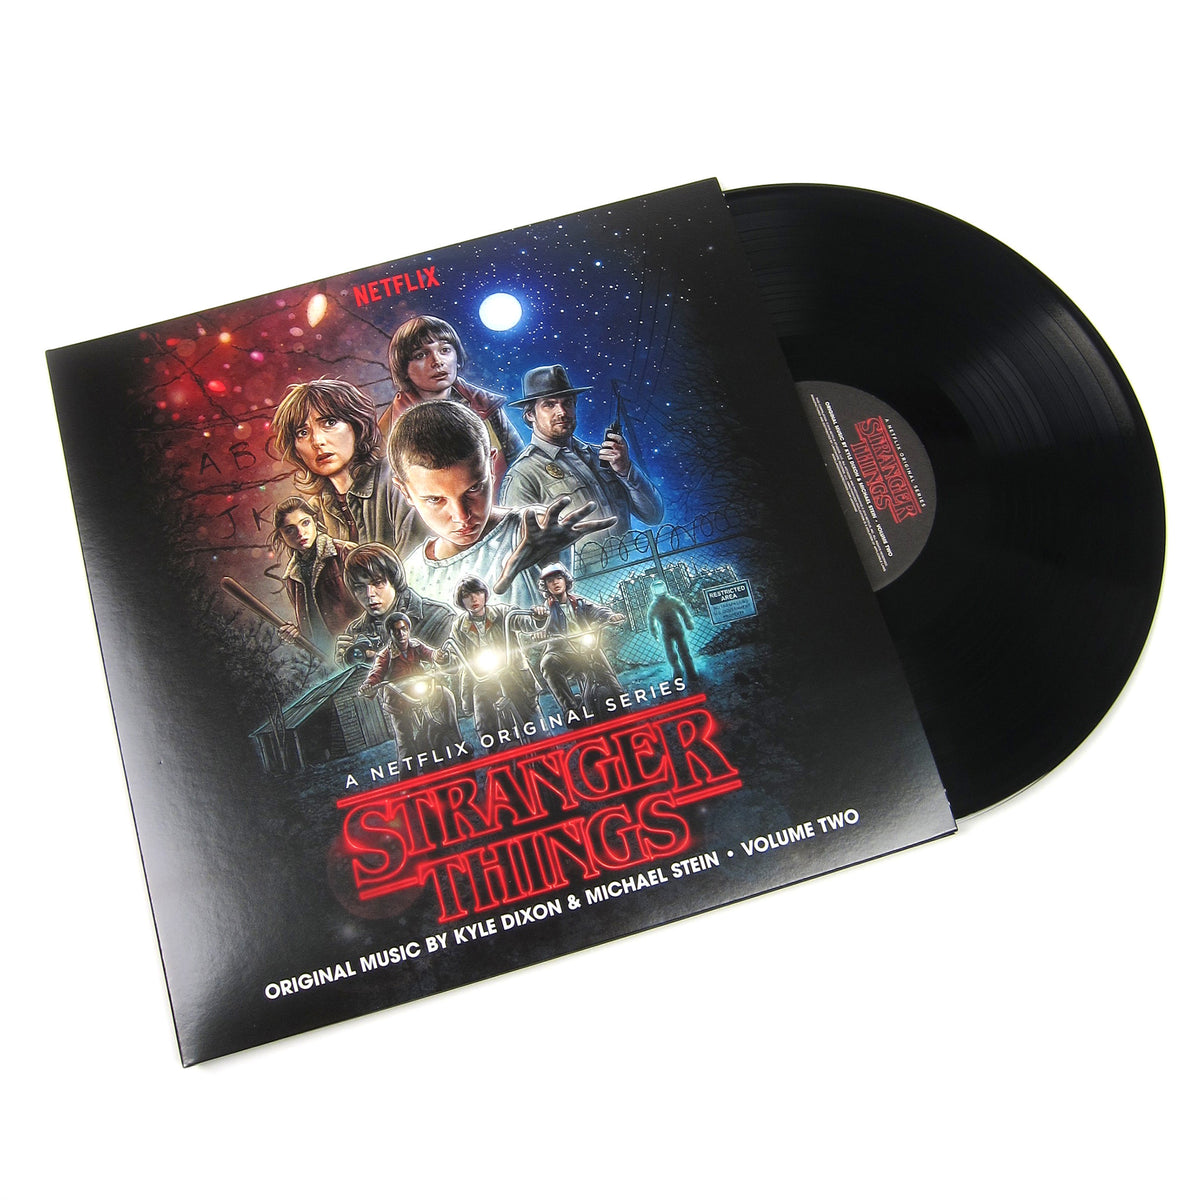 Kyle Dixon & Michael Stein: Stranger Things Vol.2 Vinyl 2LP